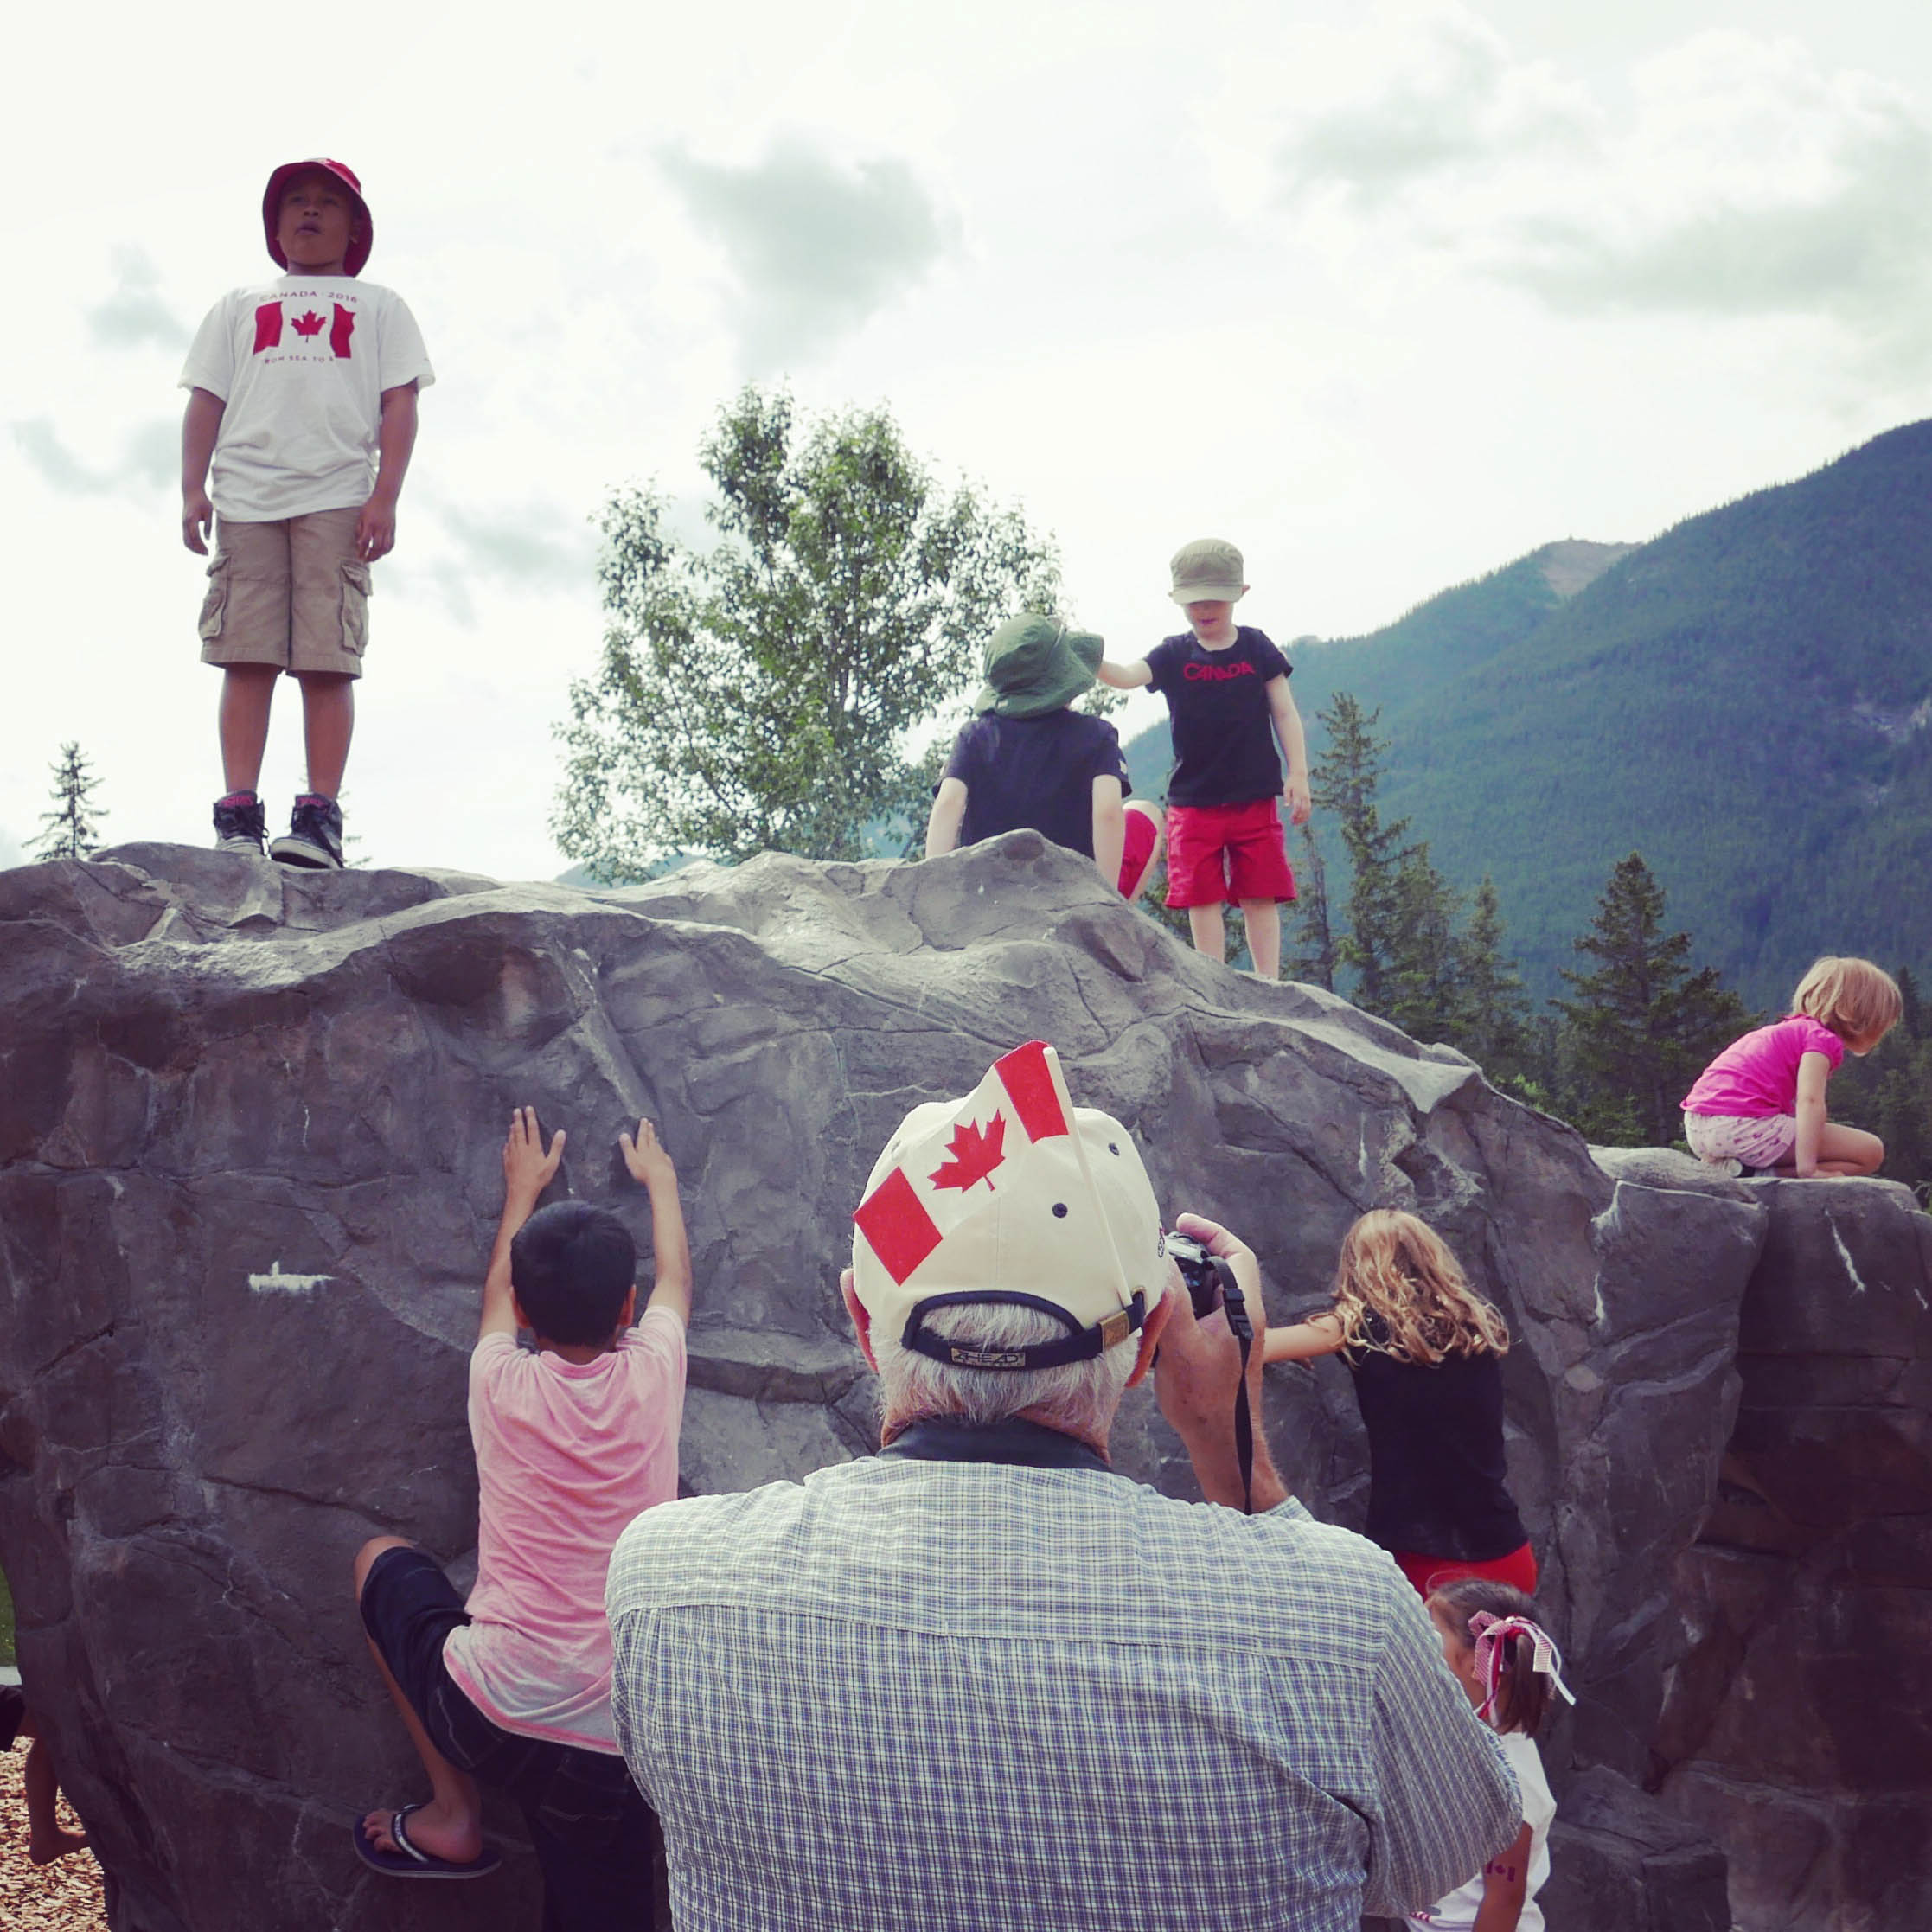 Canada Day celebrations, Banff, Alberta, 2016.